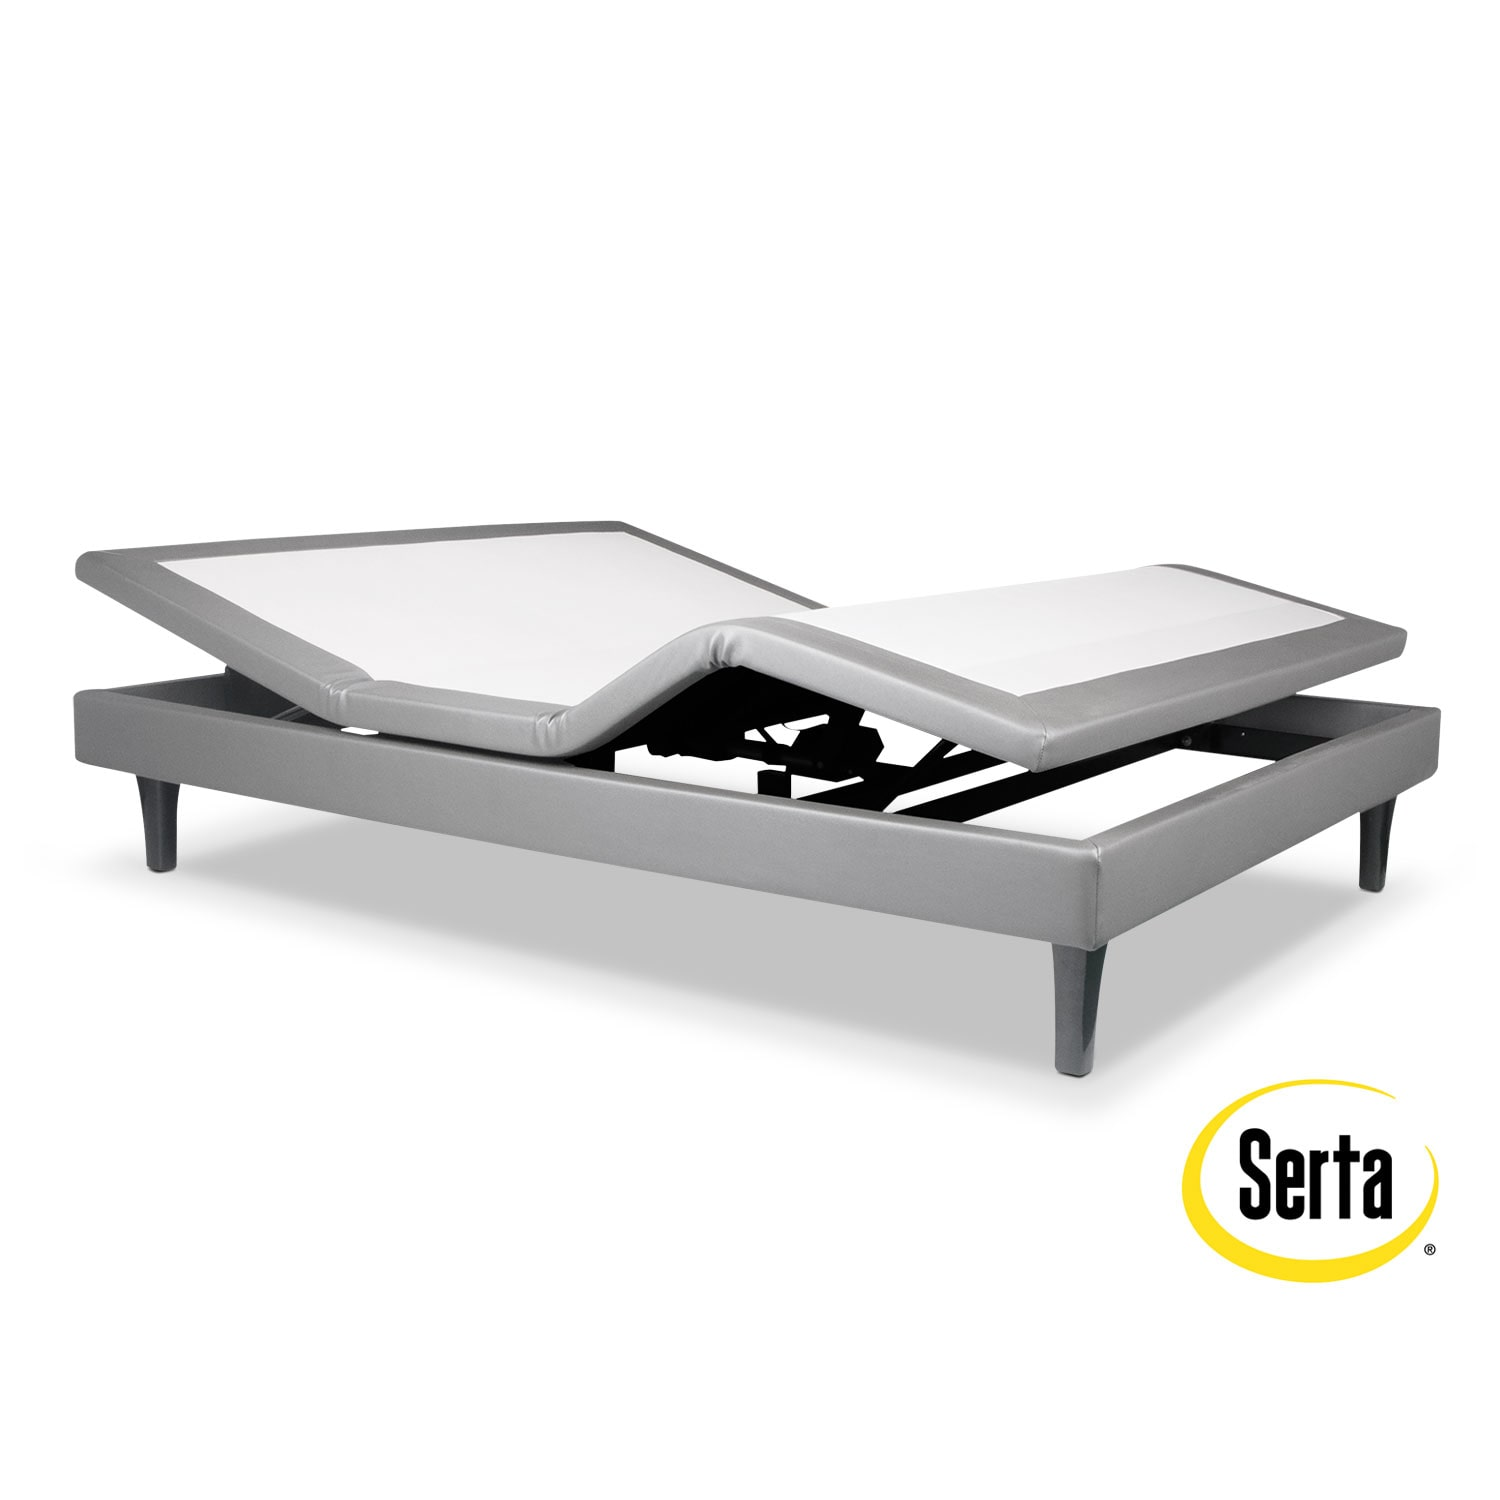 Serta Motion Perfect III King Adjustable Base